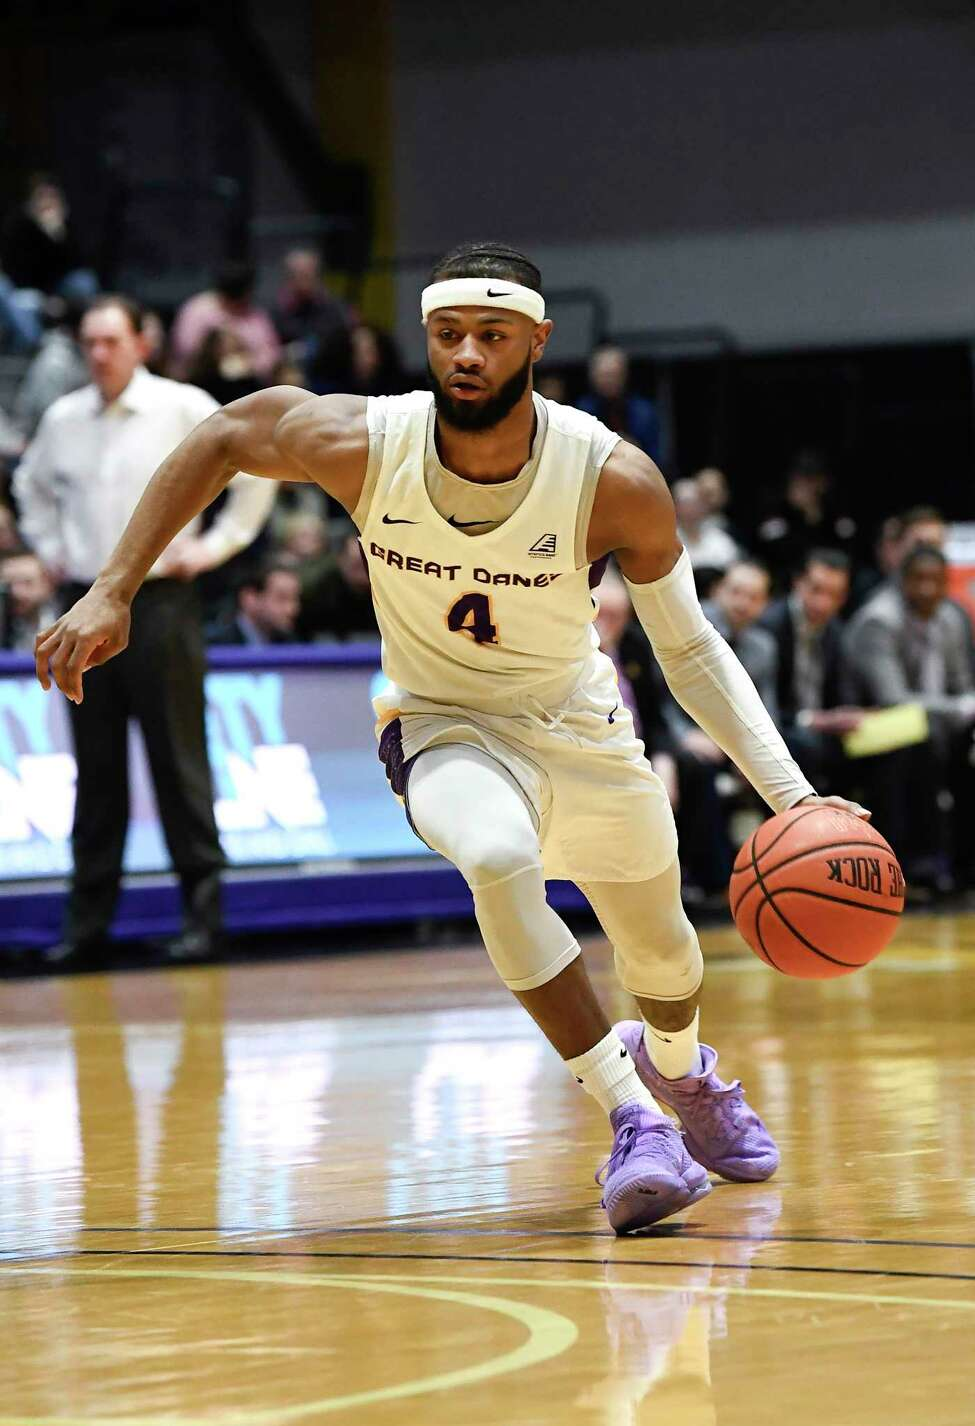 University at Albany guard Ahmad Clark (4) moves the ball against New Hampshire during the first half of an NCAA basketball game Saturday, Feb. 22, 2020, in Albany, N.Y., (Hans Pennink / Special to the Times Union)